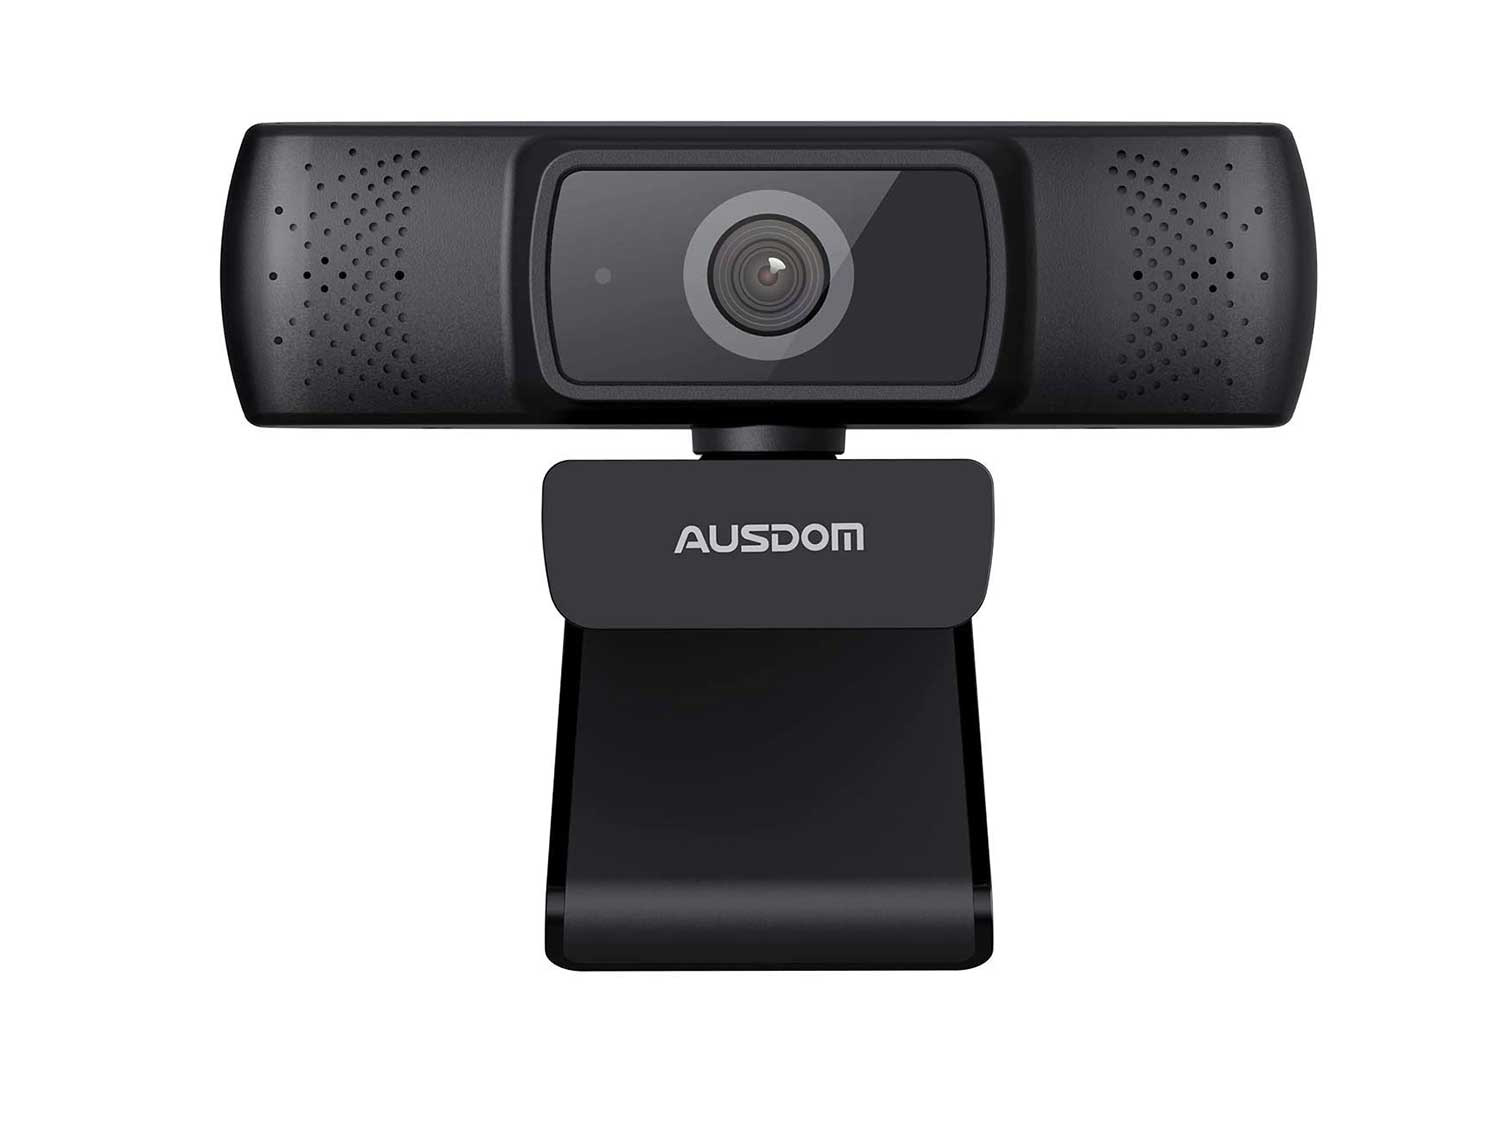 Autofocus 1080P Webcam for PC with Privacy Cover, AUSDOM AF640 Full HD Video Calling, Business Web Camera with Microphone, 90° Wide-Angle View for Desktop/Laptop/Mac, Work with Skype/Zoom/WebEx/Lync